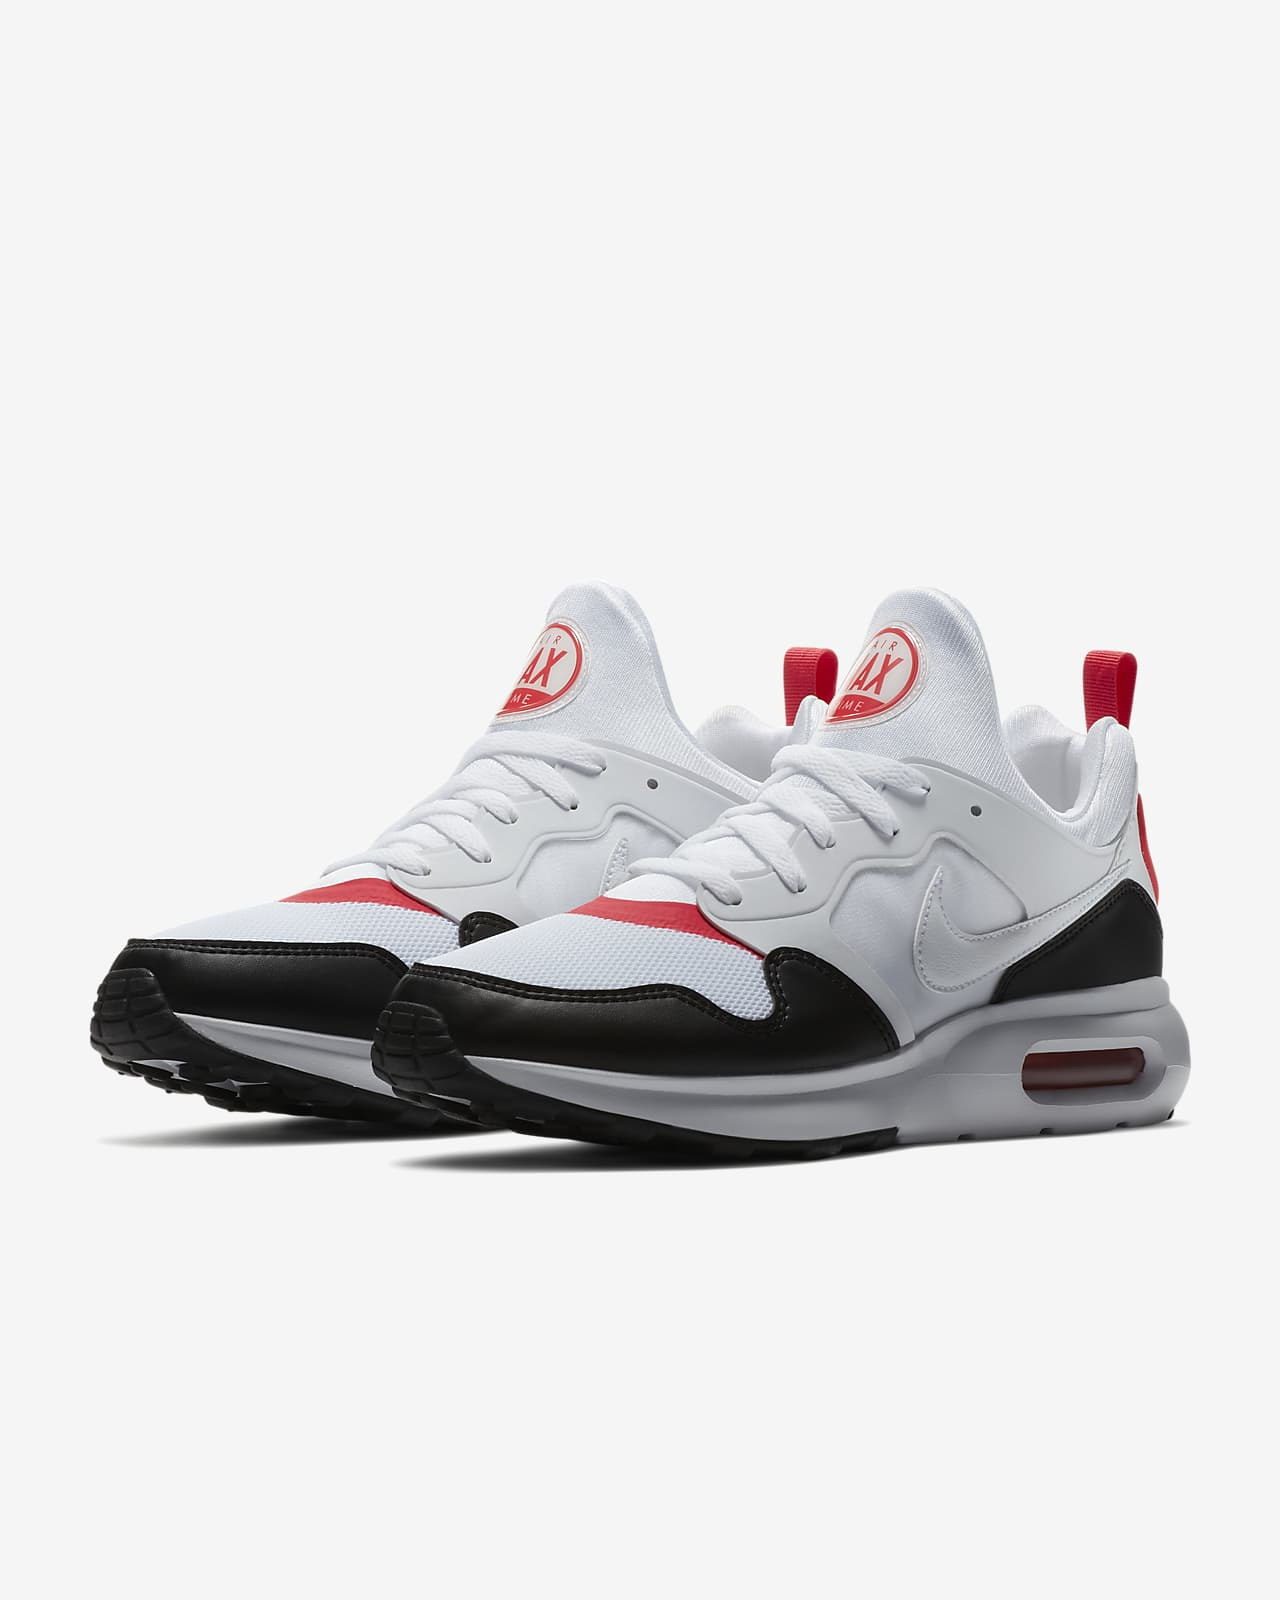 Chaussure Nike Air Max Prime pour Homme